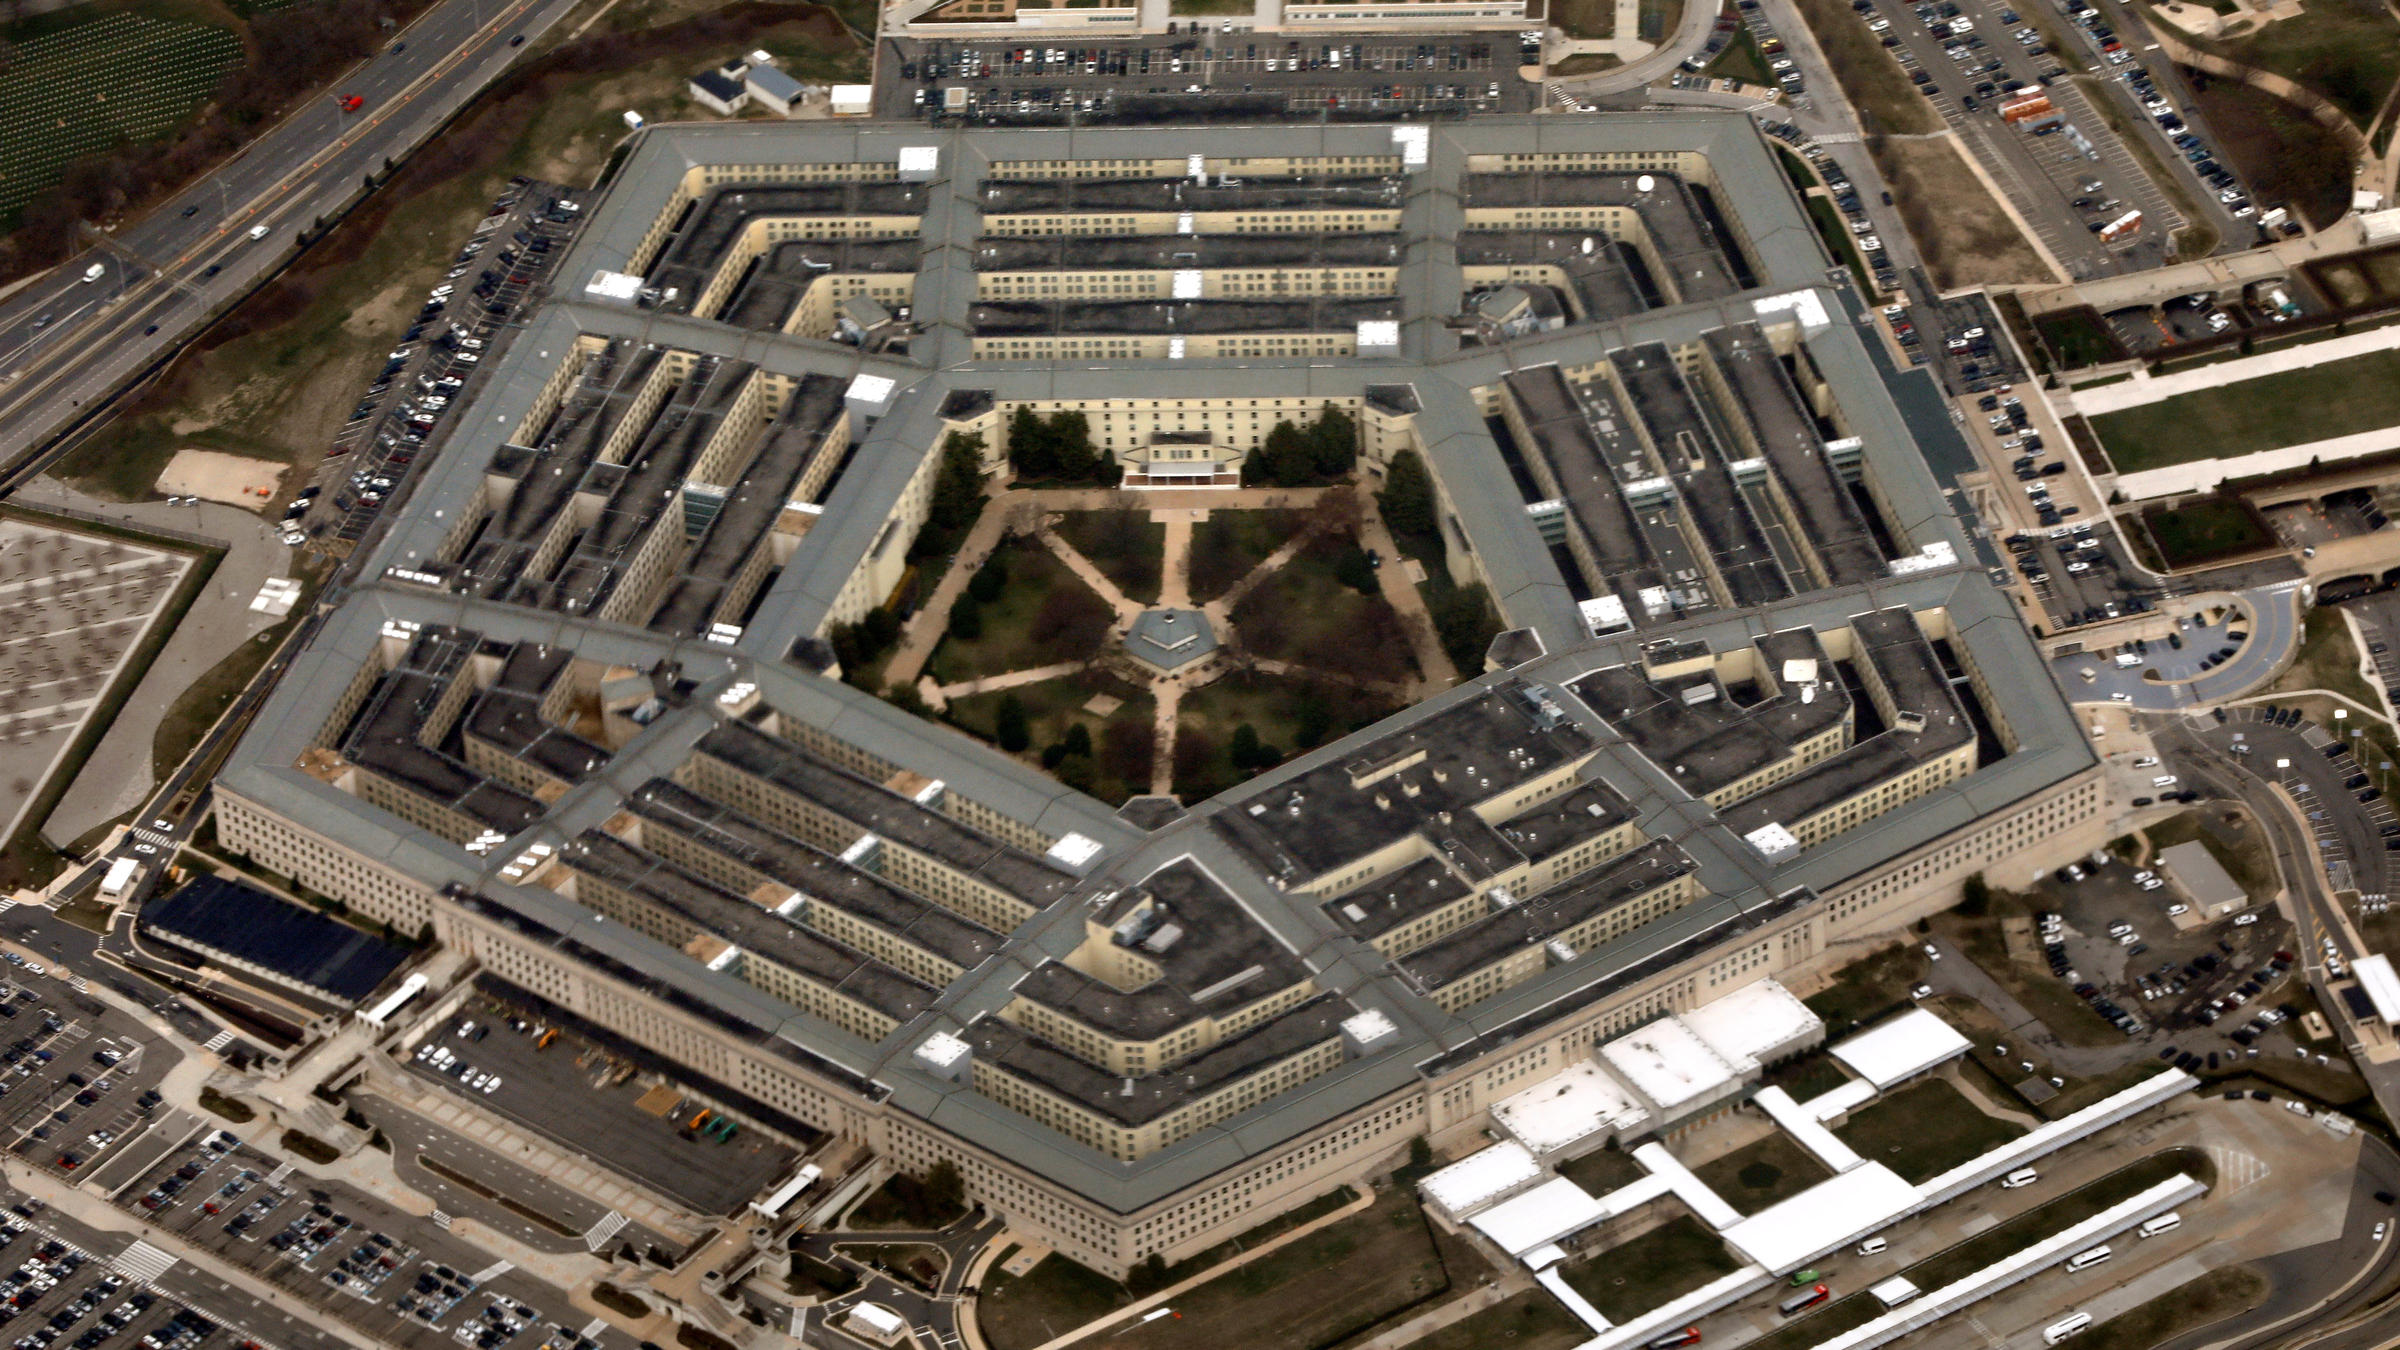 New Gao Study Finds That State And >> Cyber Tests Showed Nearly All New Pentagon Weapons Vulnerable To